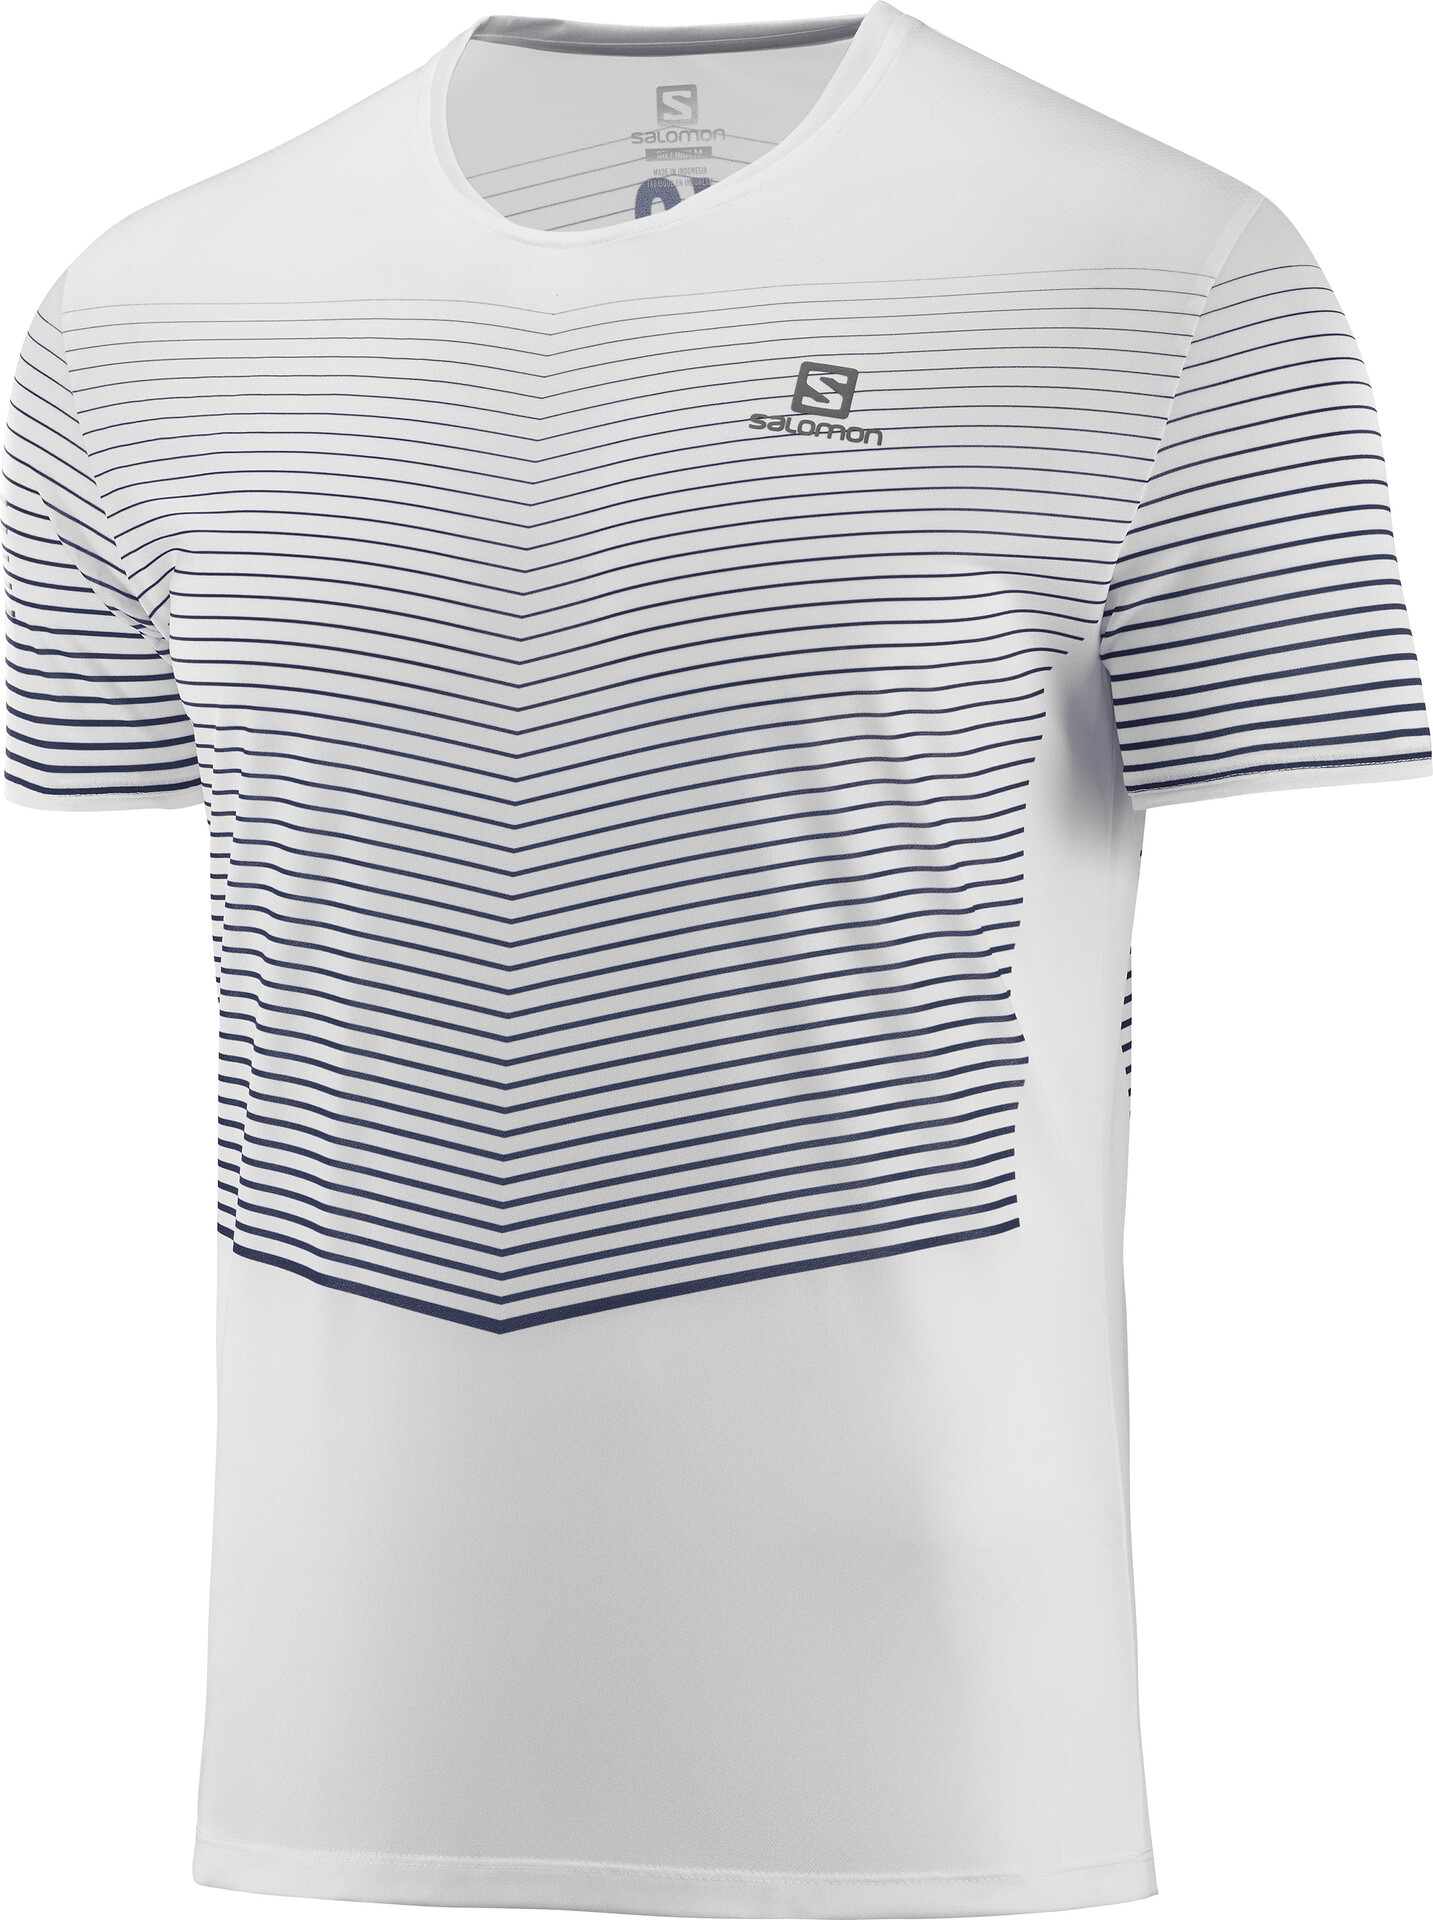 Salomon Sense T shirt Herrer, white